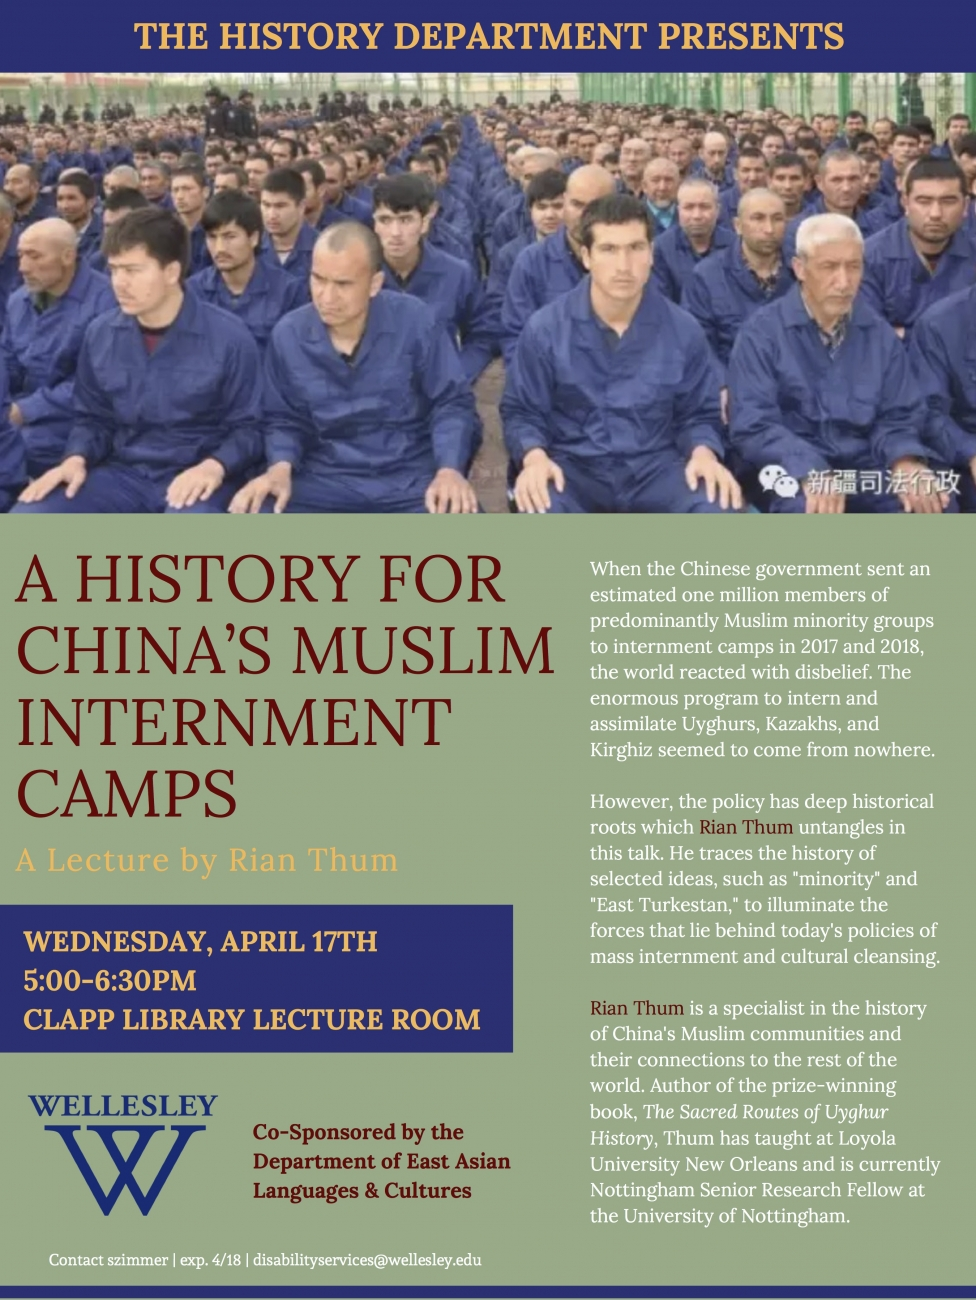 """A History for China's Muslim Internment Camps,"" lecture by Rian Thum (5:00pm, April 17, 2019 in Library Lecture Room)"